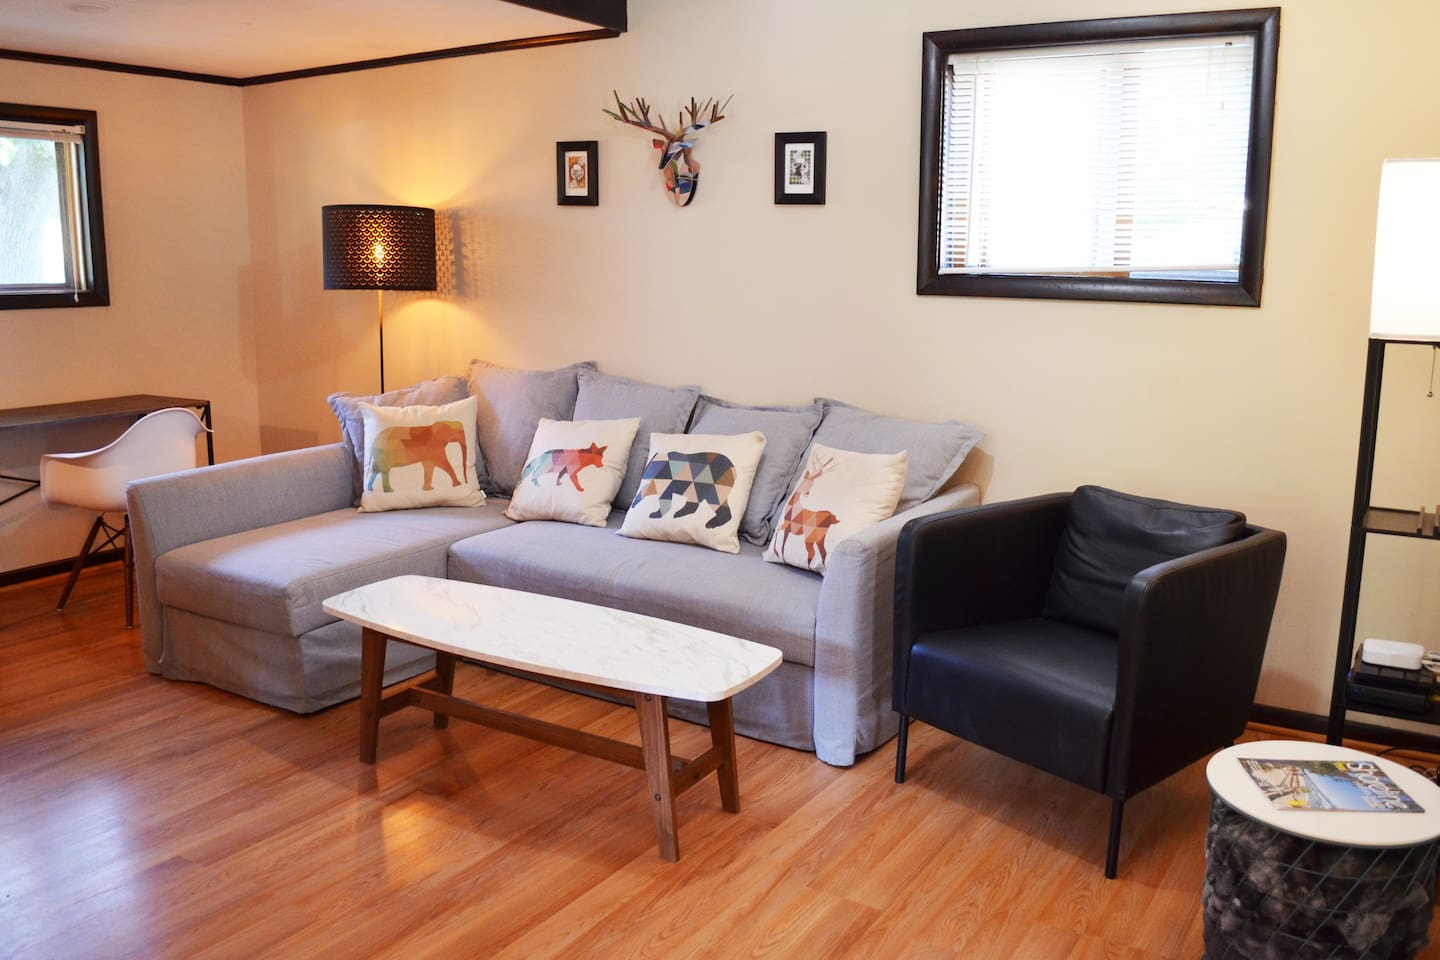 Stay at our vintage home with a modern flare in the perfect neighborhood for a relaxing week in beautiful Manistee.  Living room couch converts to a queen-sized bed with no bar.